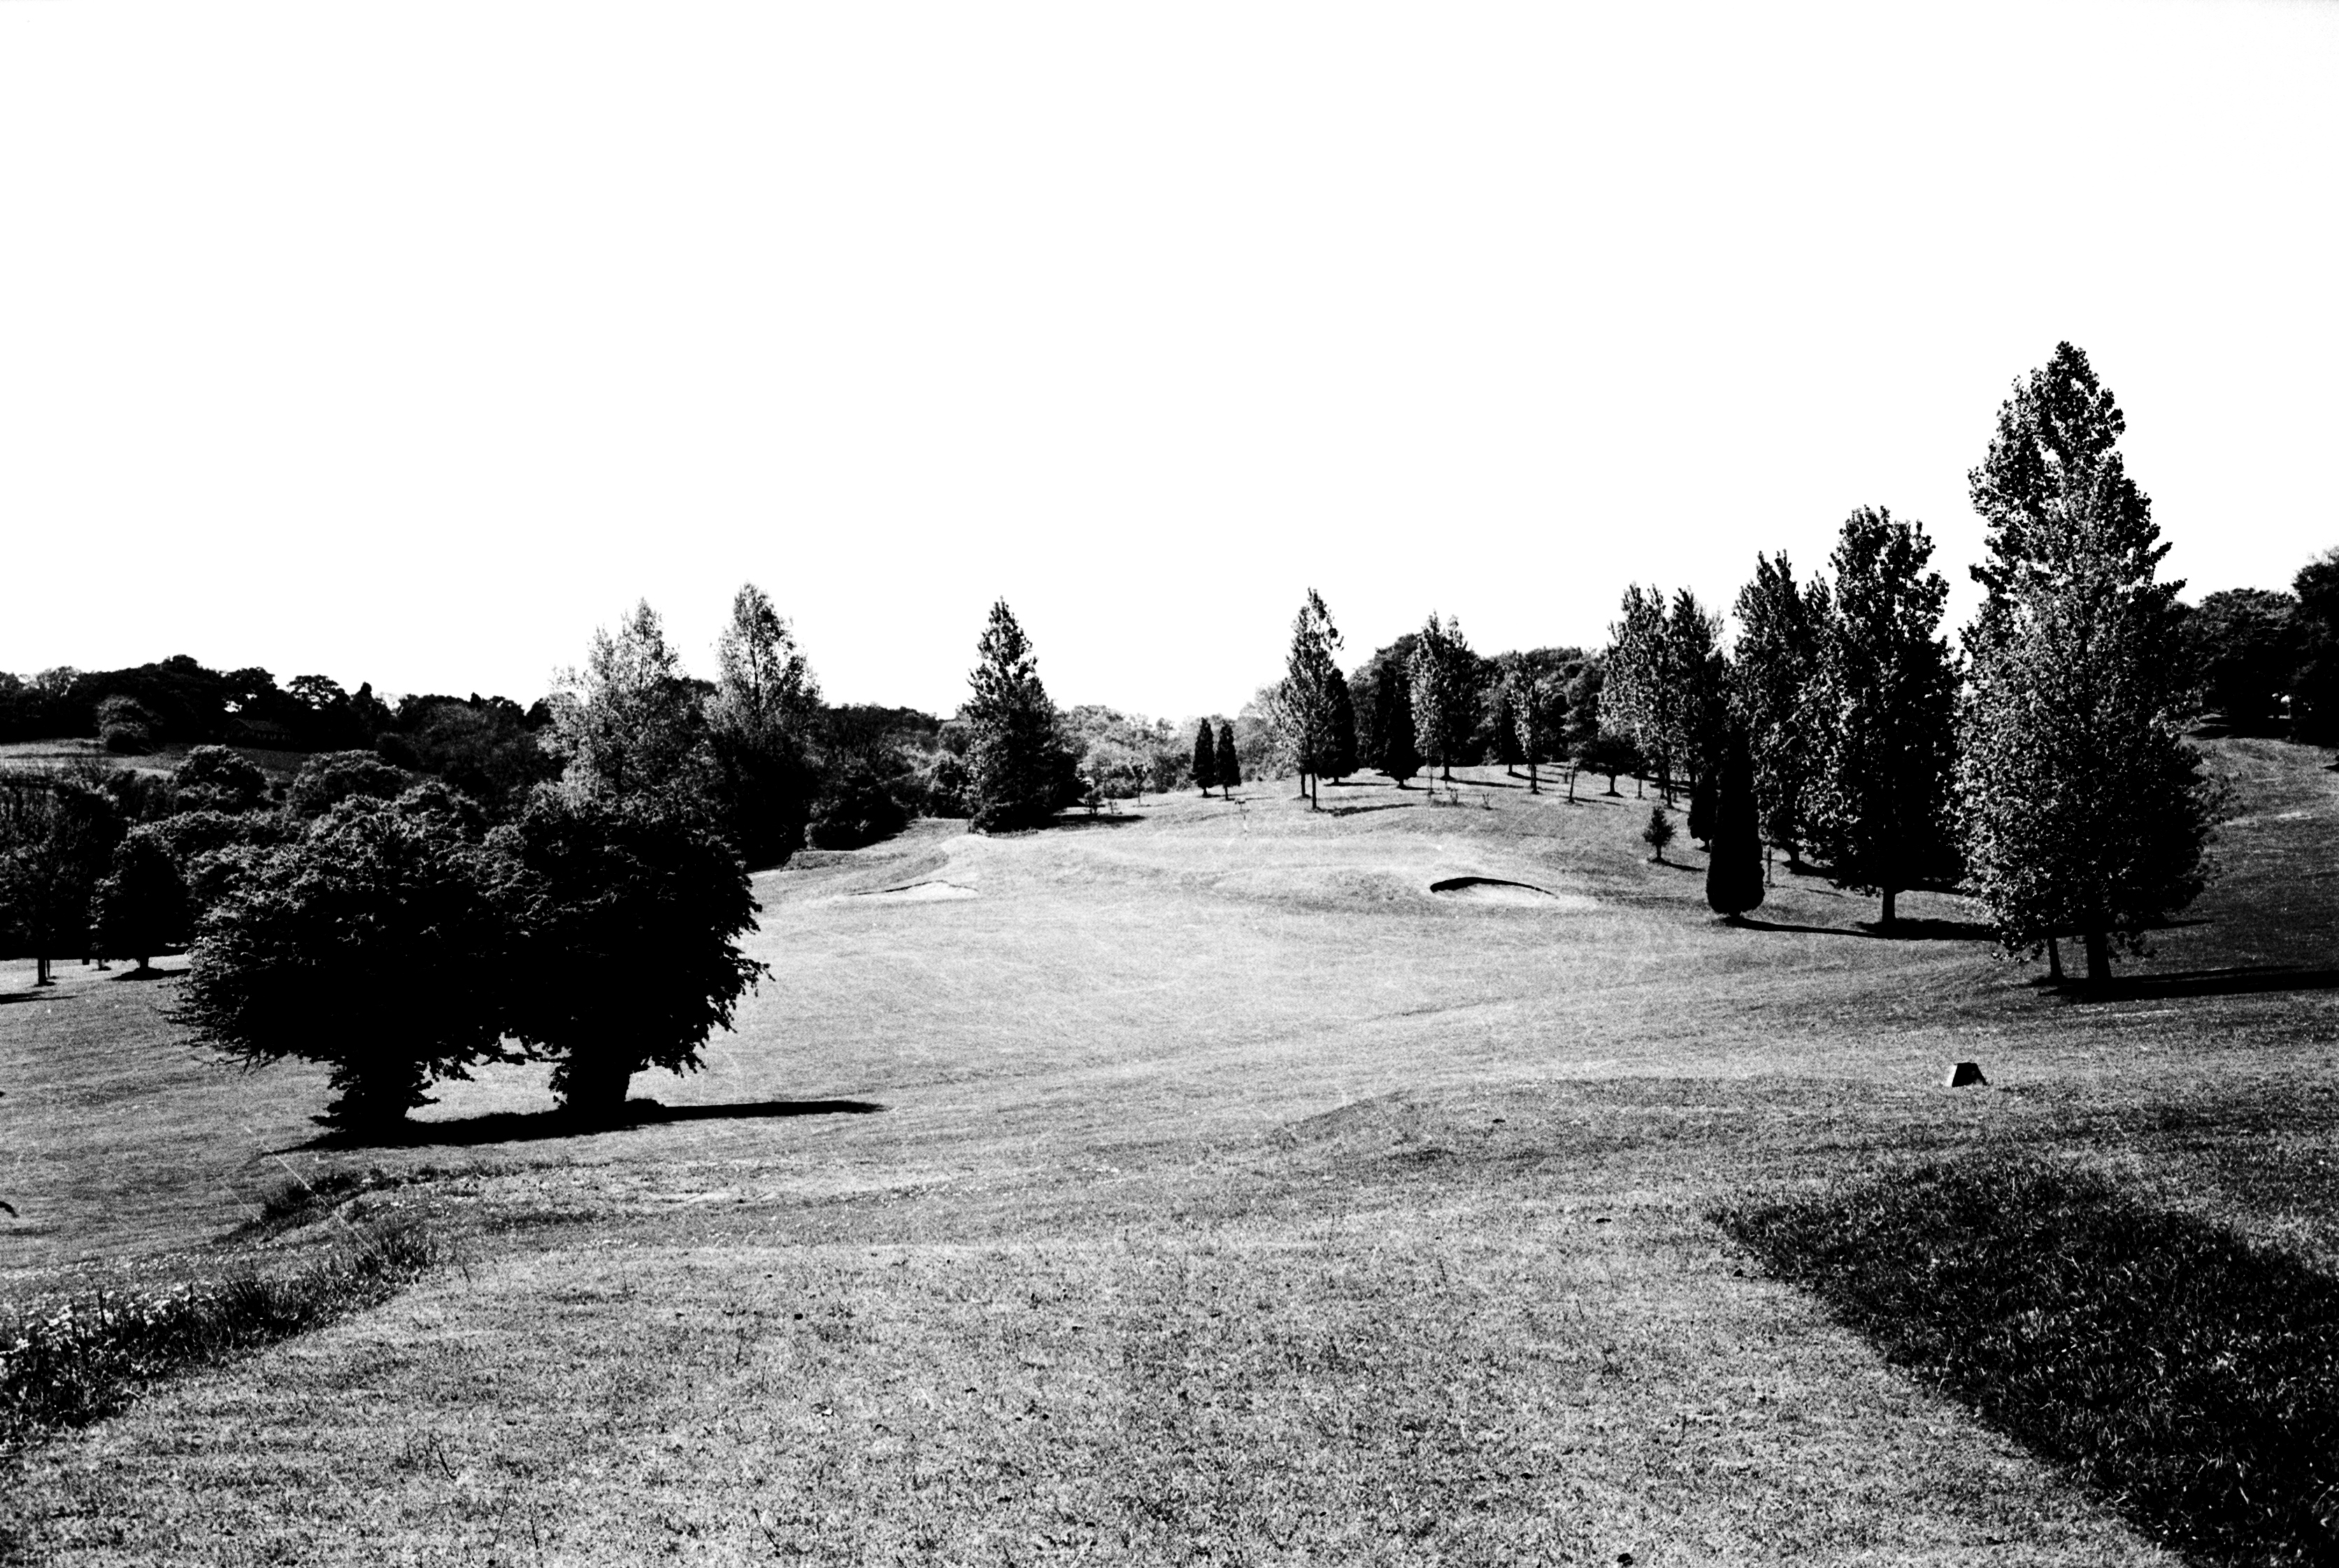 Second Hole